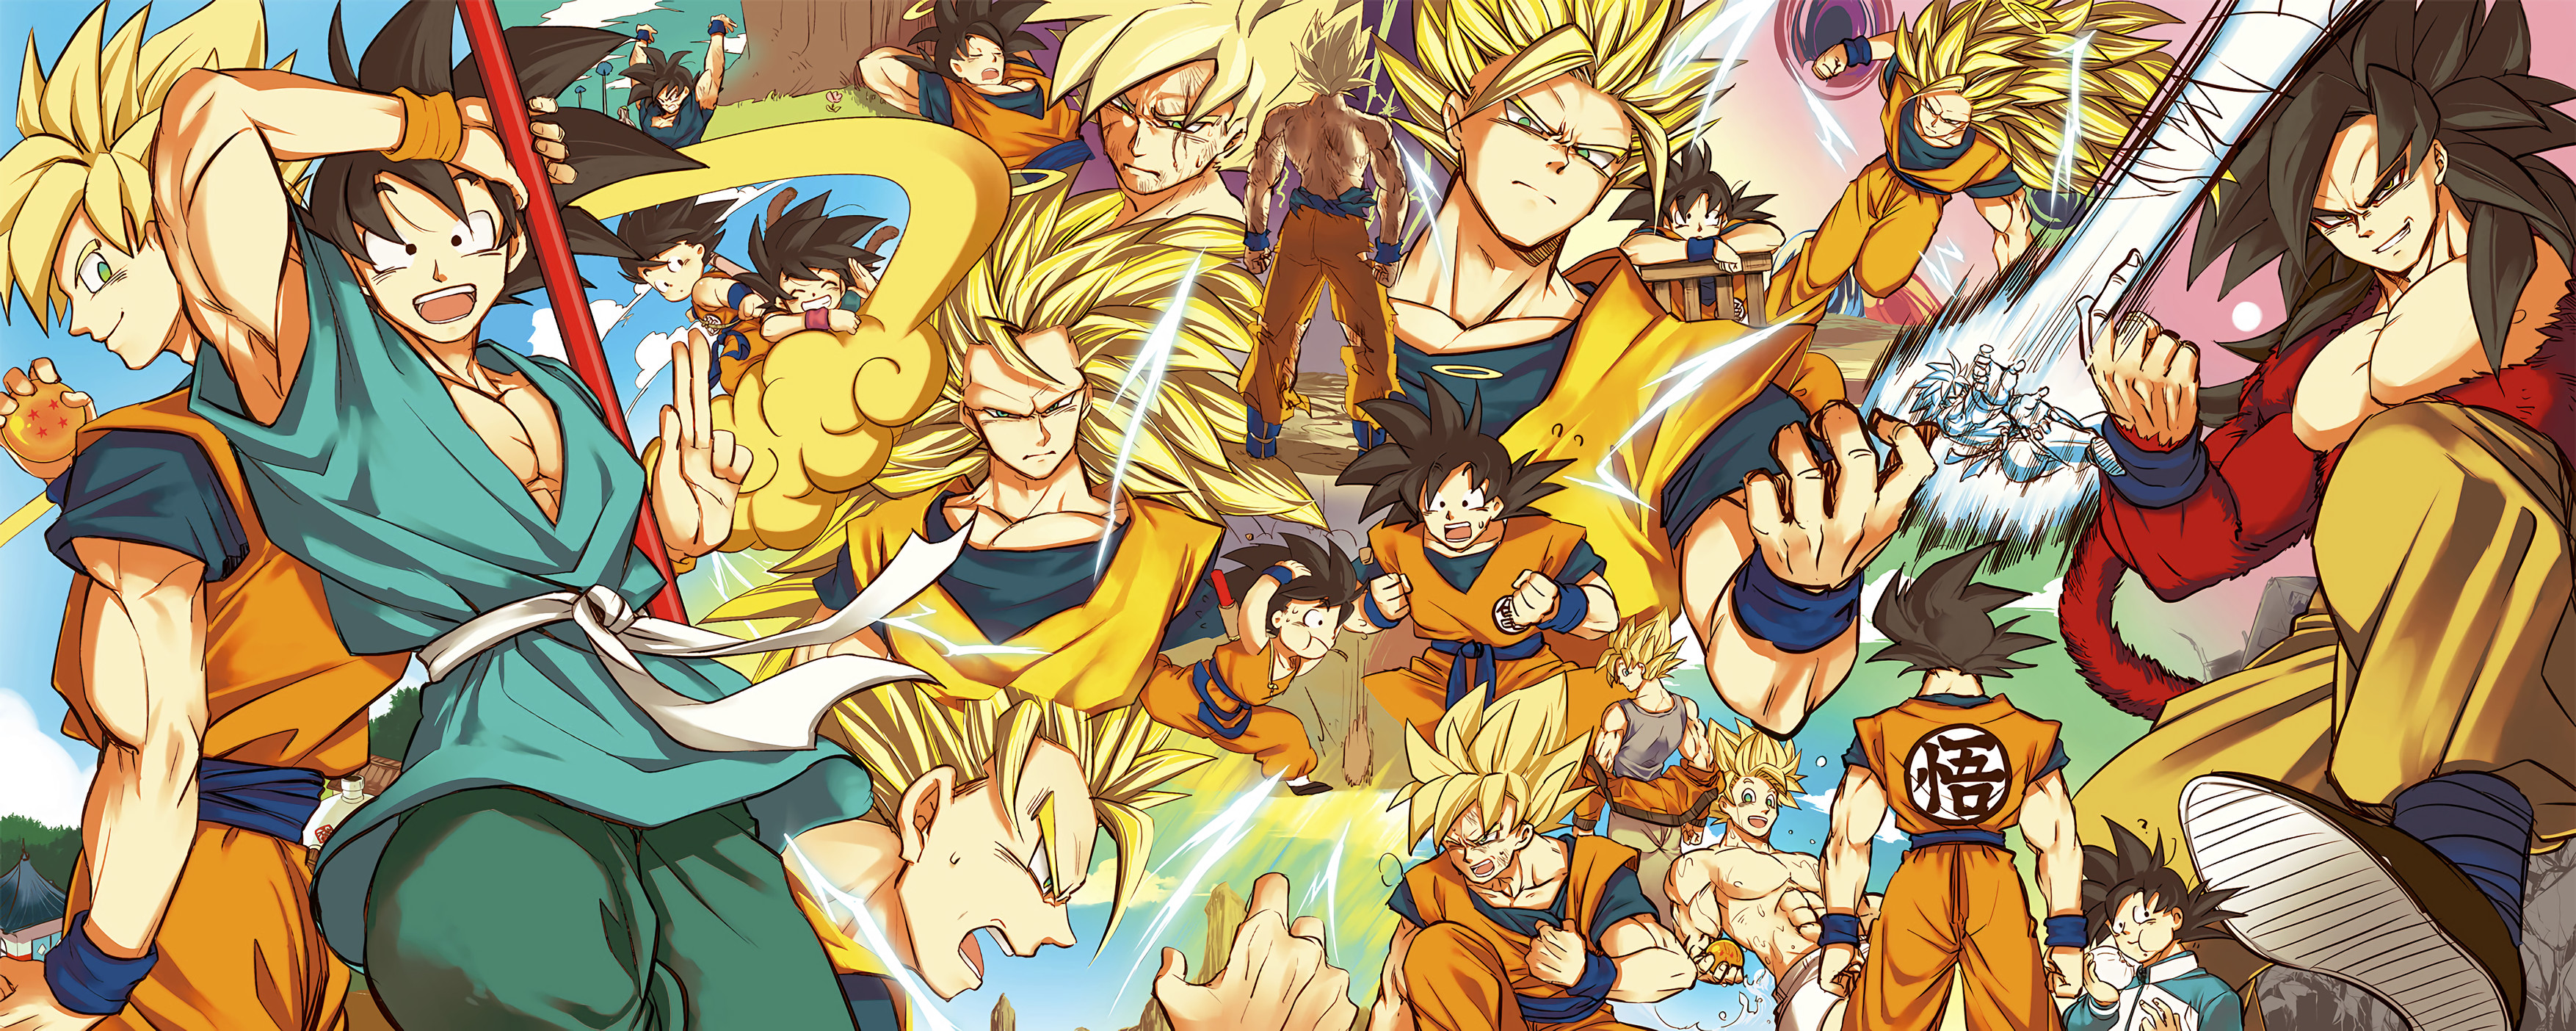 Goku Super Saiyan 3 Wallpapers ·① WallpaperTag